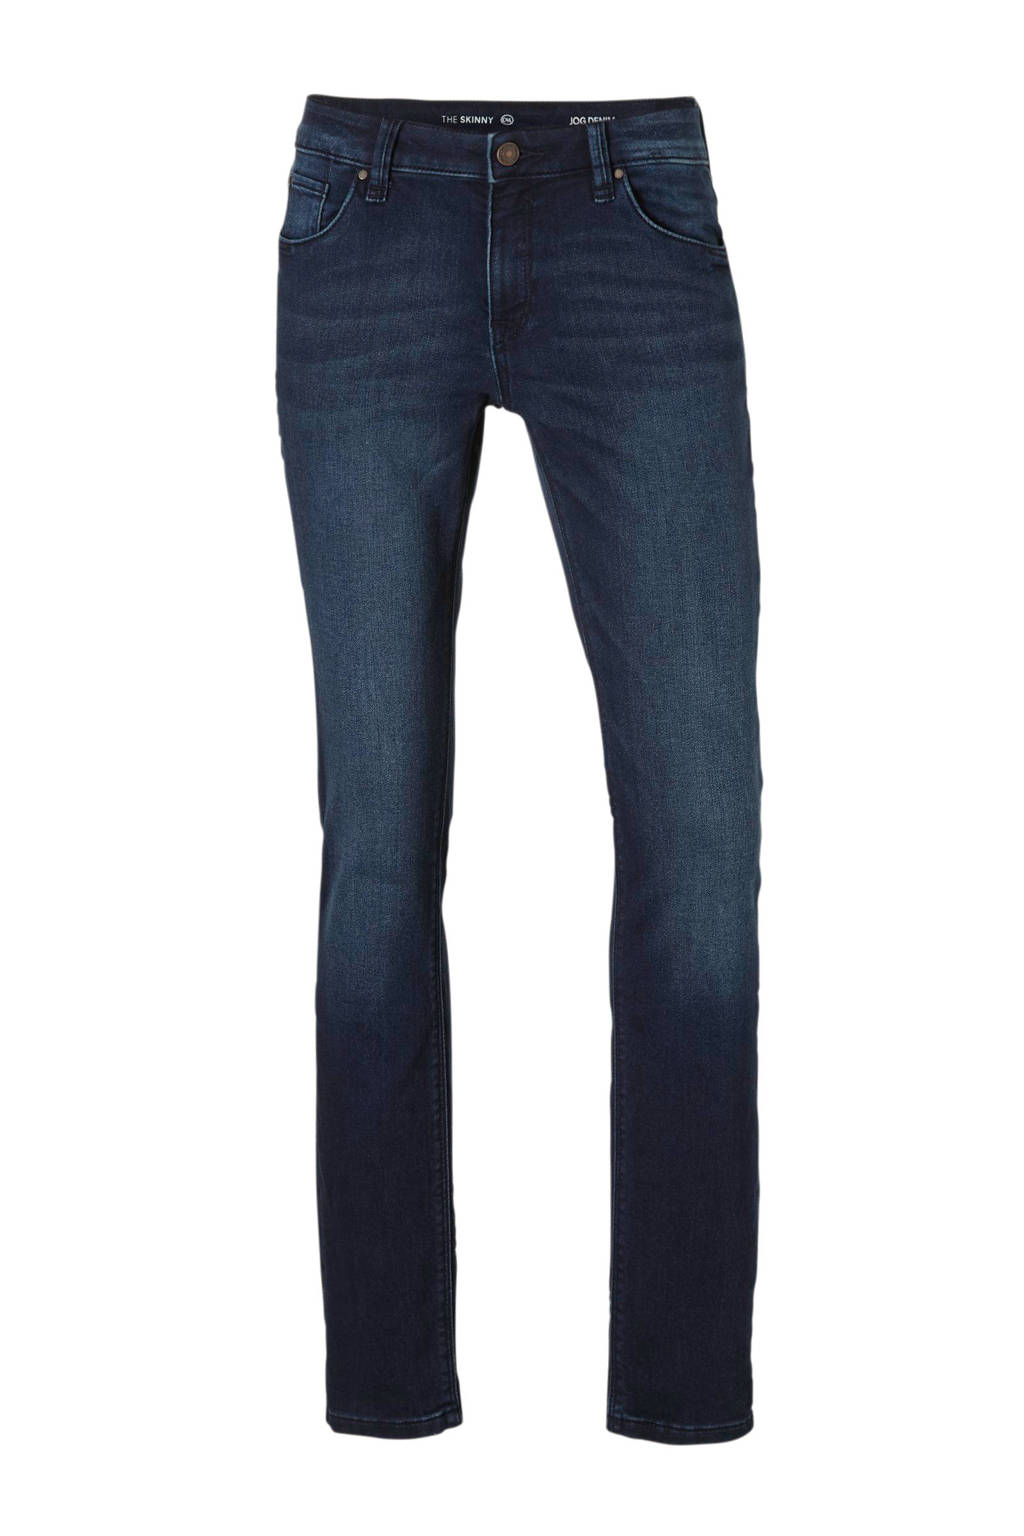 C&A The Denim skinny jog denim, Donkerblauw